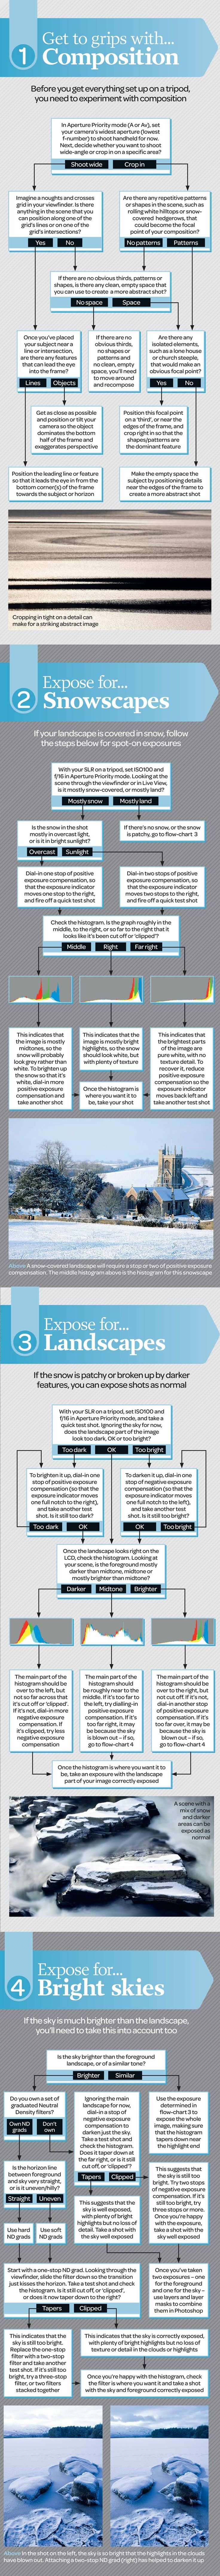 Winter landscape photography cheat sheet: how to compose and expose any scene